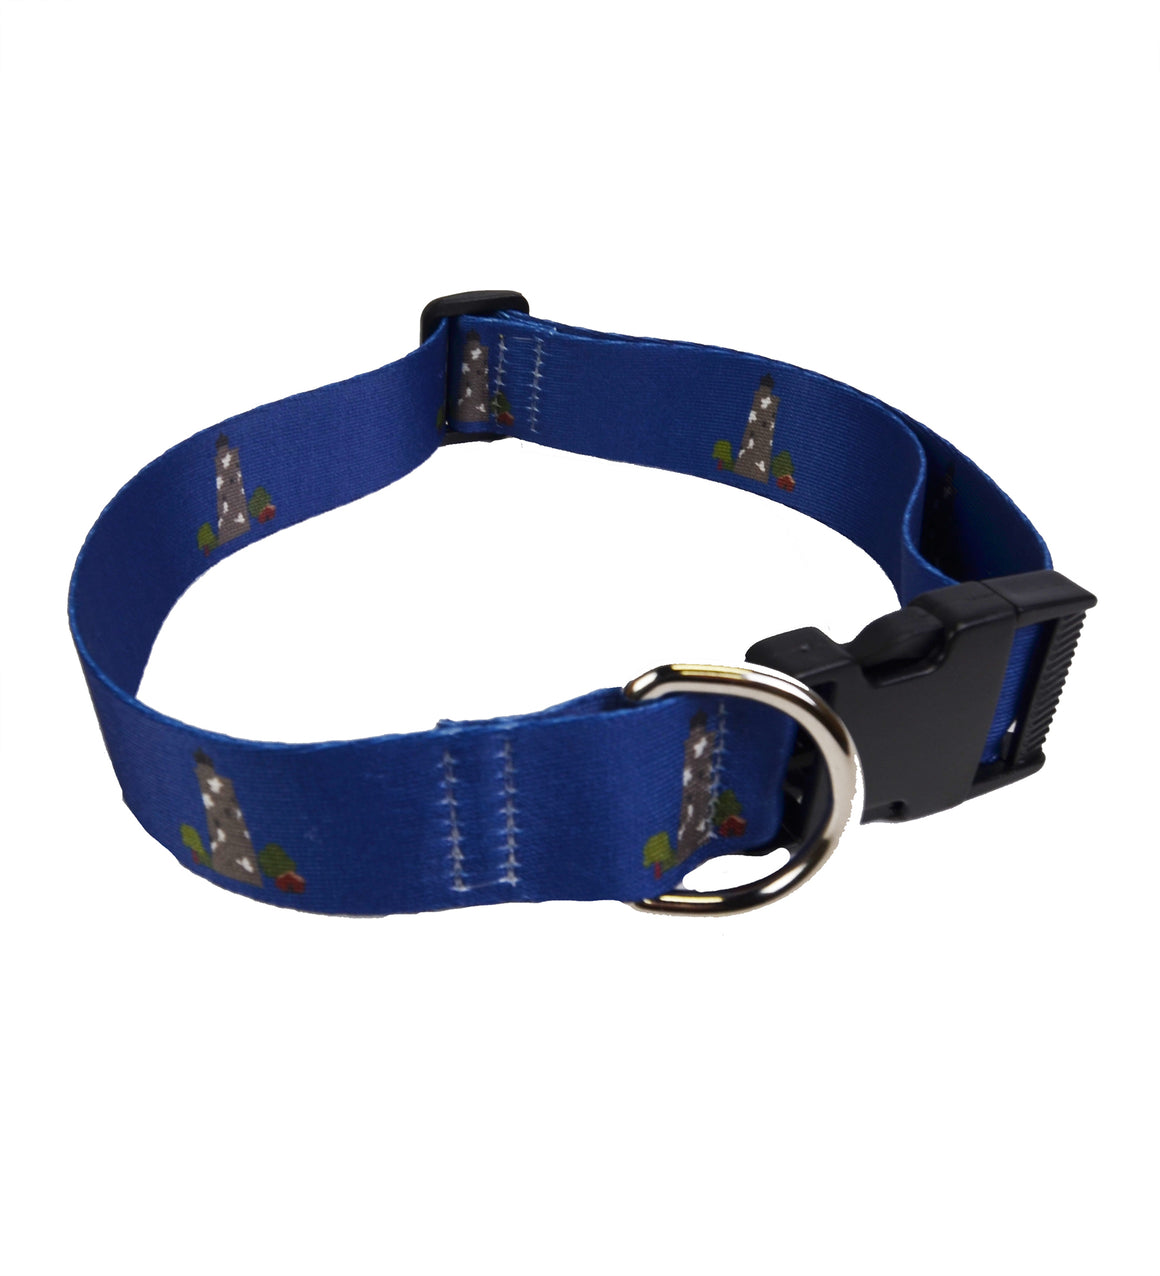 Printed Dog Collar - Lighthouse